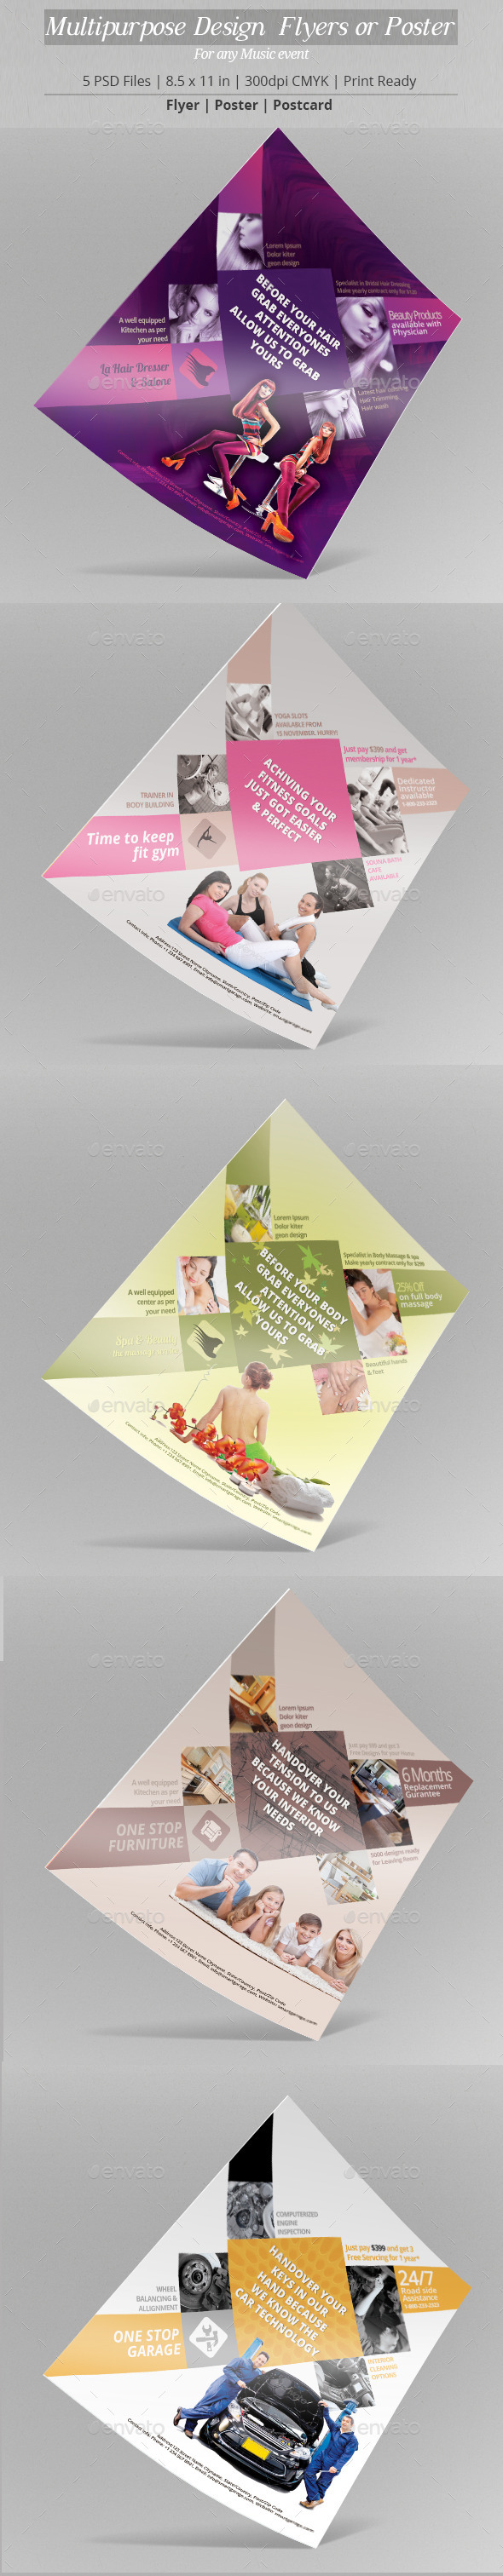 Multipurpose Design Flyer or Poster Template - Flyers Print Templates